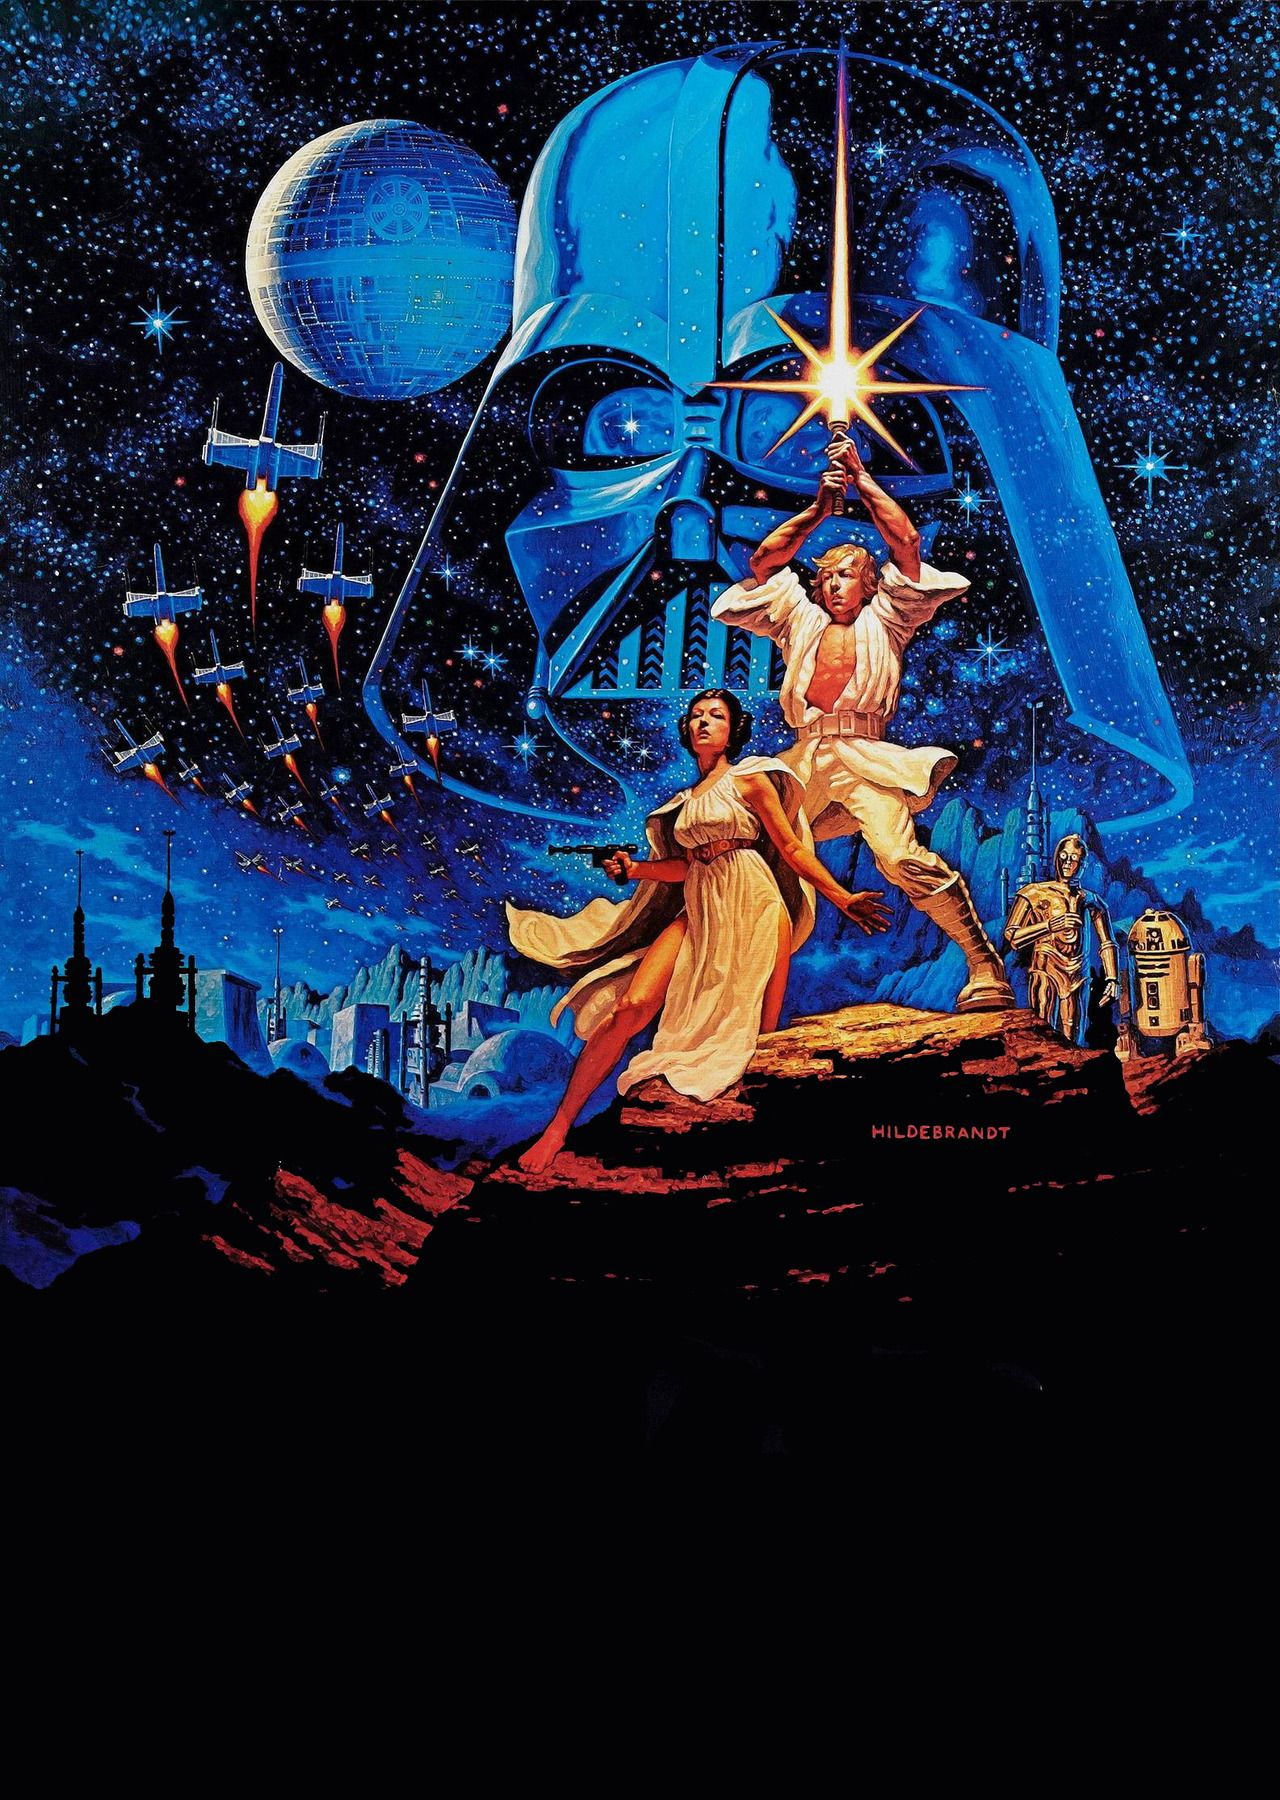 The Poster Star Wars Movie Poster Star Wars Poster Star Wars Movie